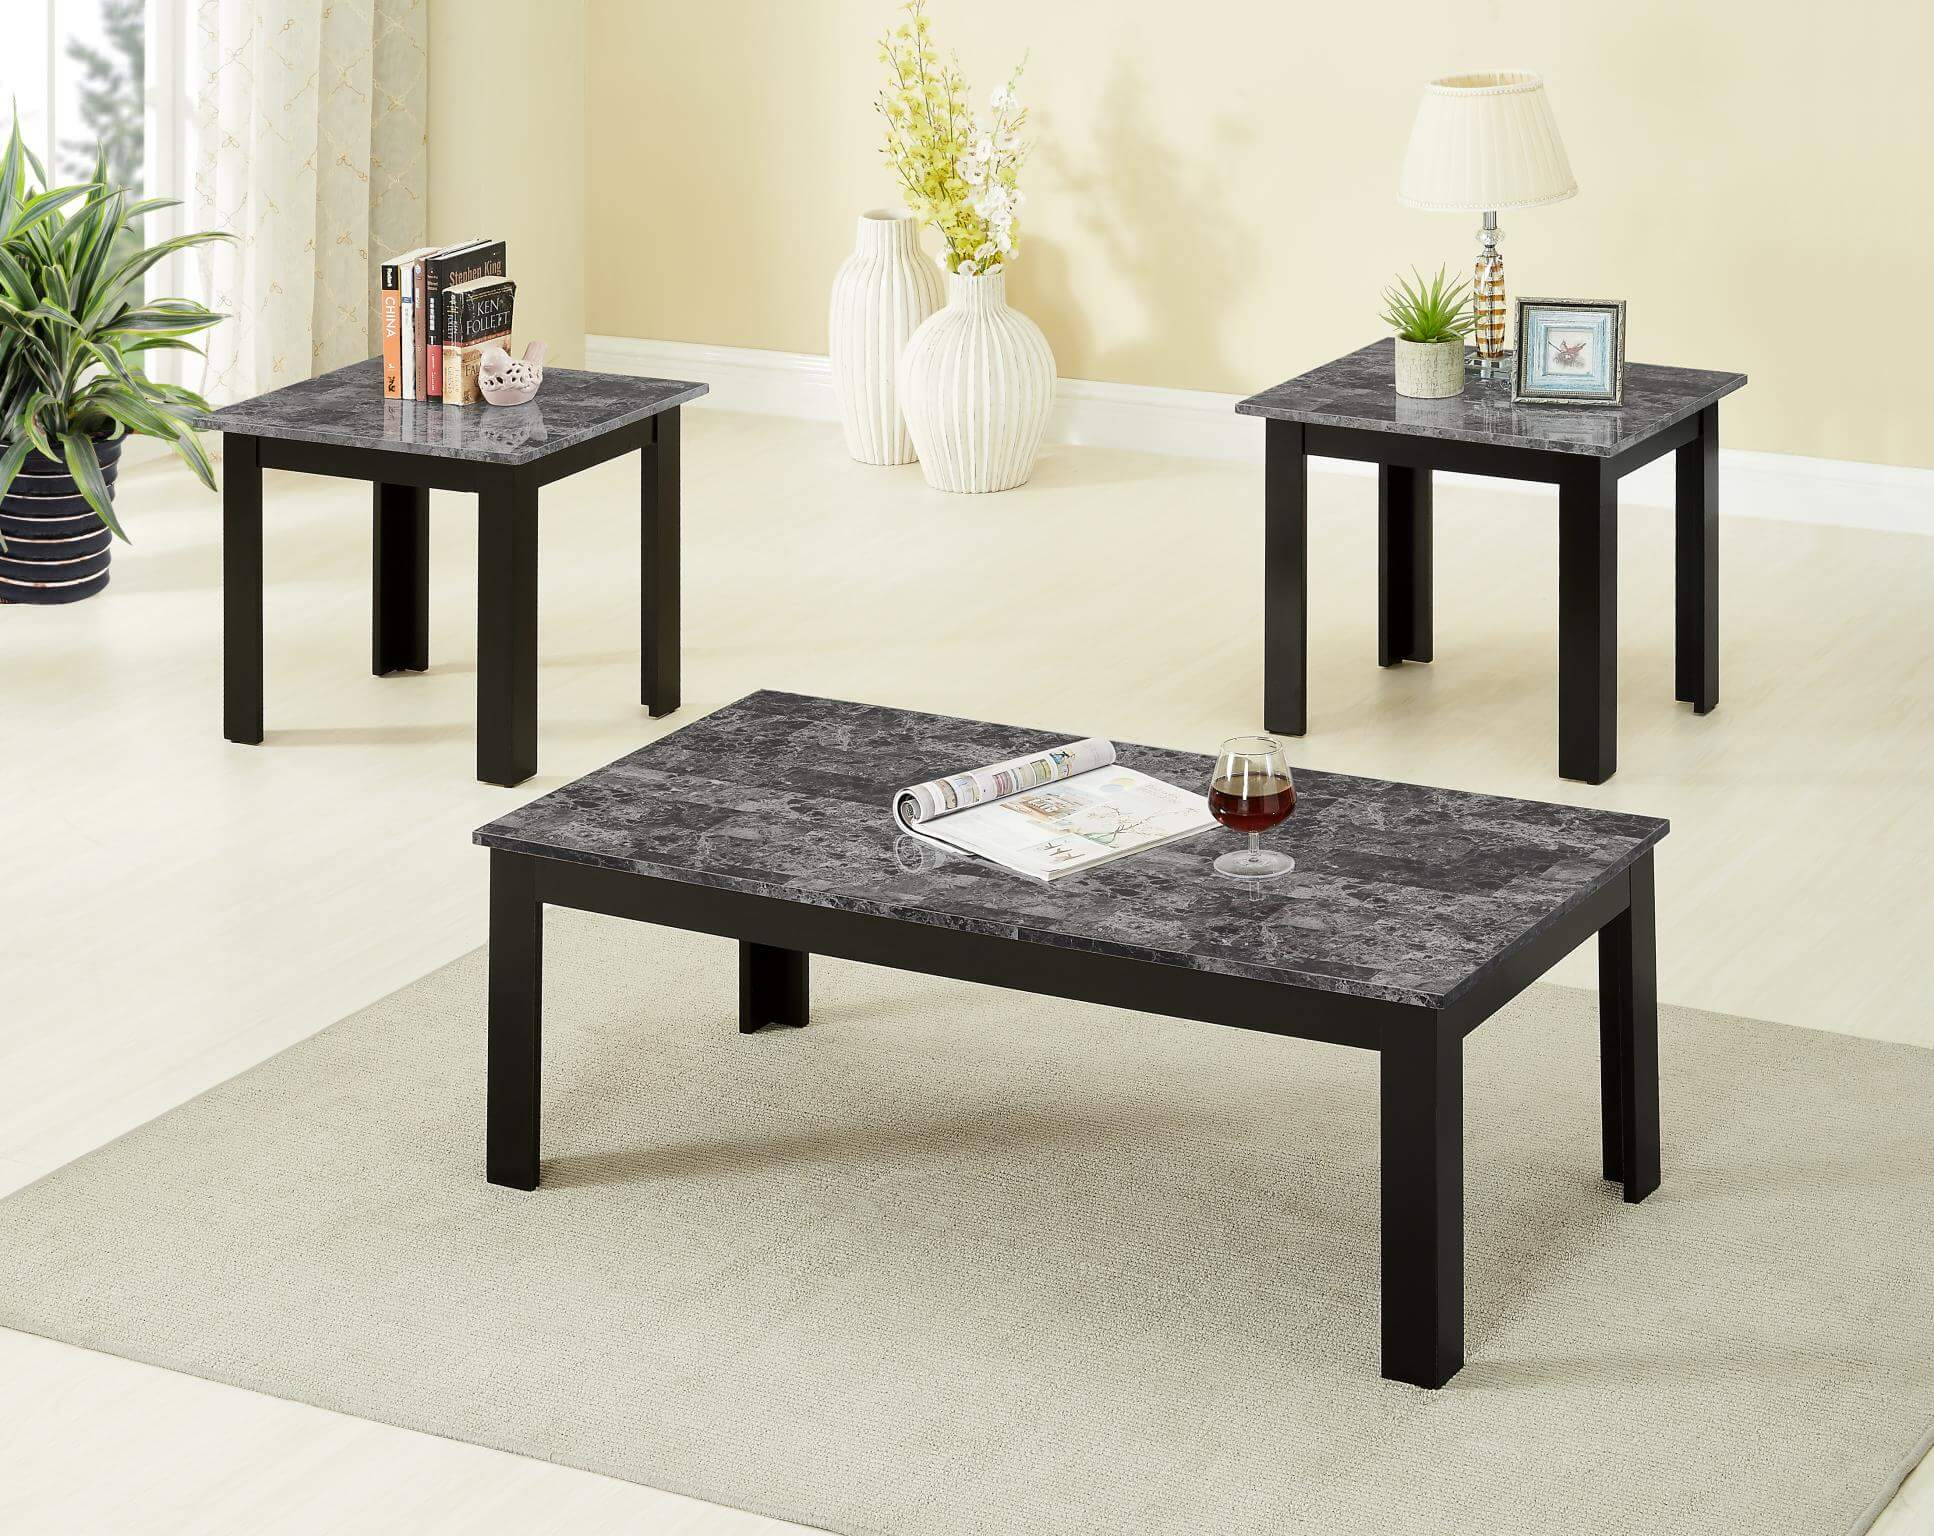 piece black faux marble coffee and end table set tables global trading rustic decor bayside furnishings mid century modern furniture los angeles office with side ashley home